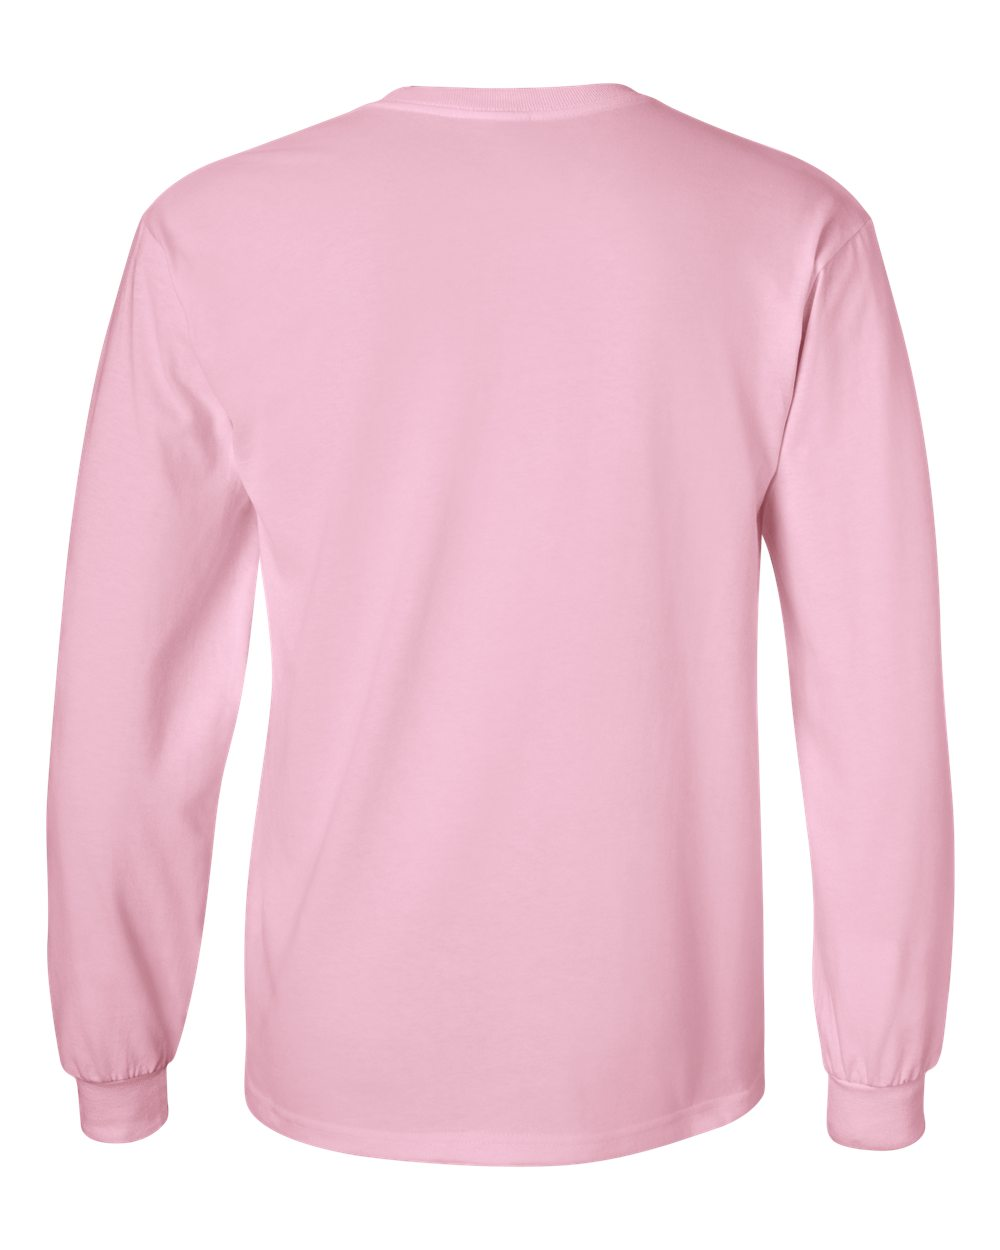 Gildan-Men-039-s-Ultra-Cotton-6-oz-Long-Sleeve-T-Shirt-G240-S-5XL thumbnail 52